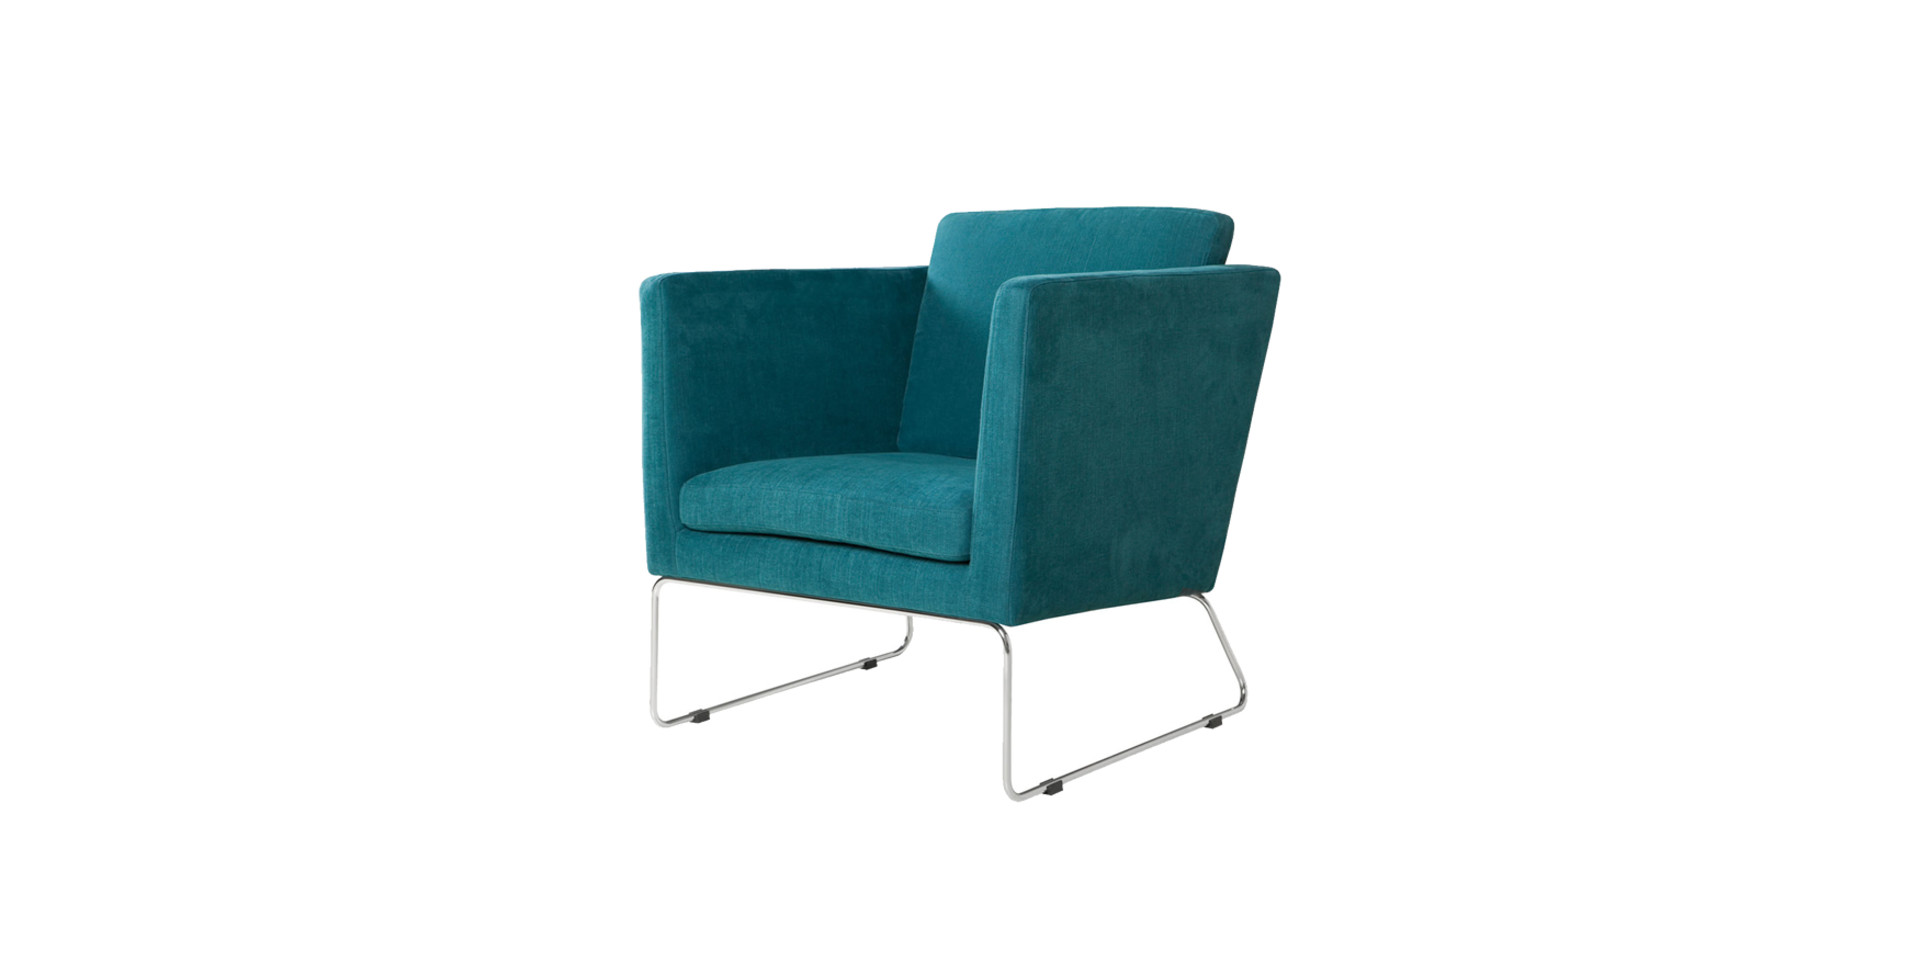 sits-clark-fauteuil-armchair_caleido1551_turquoise_4